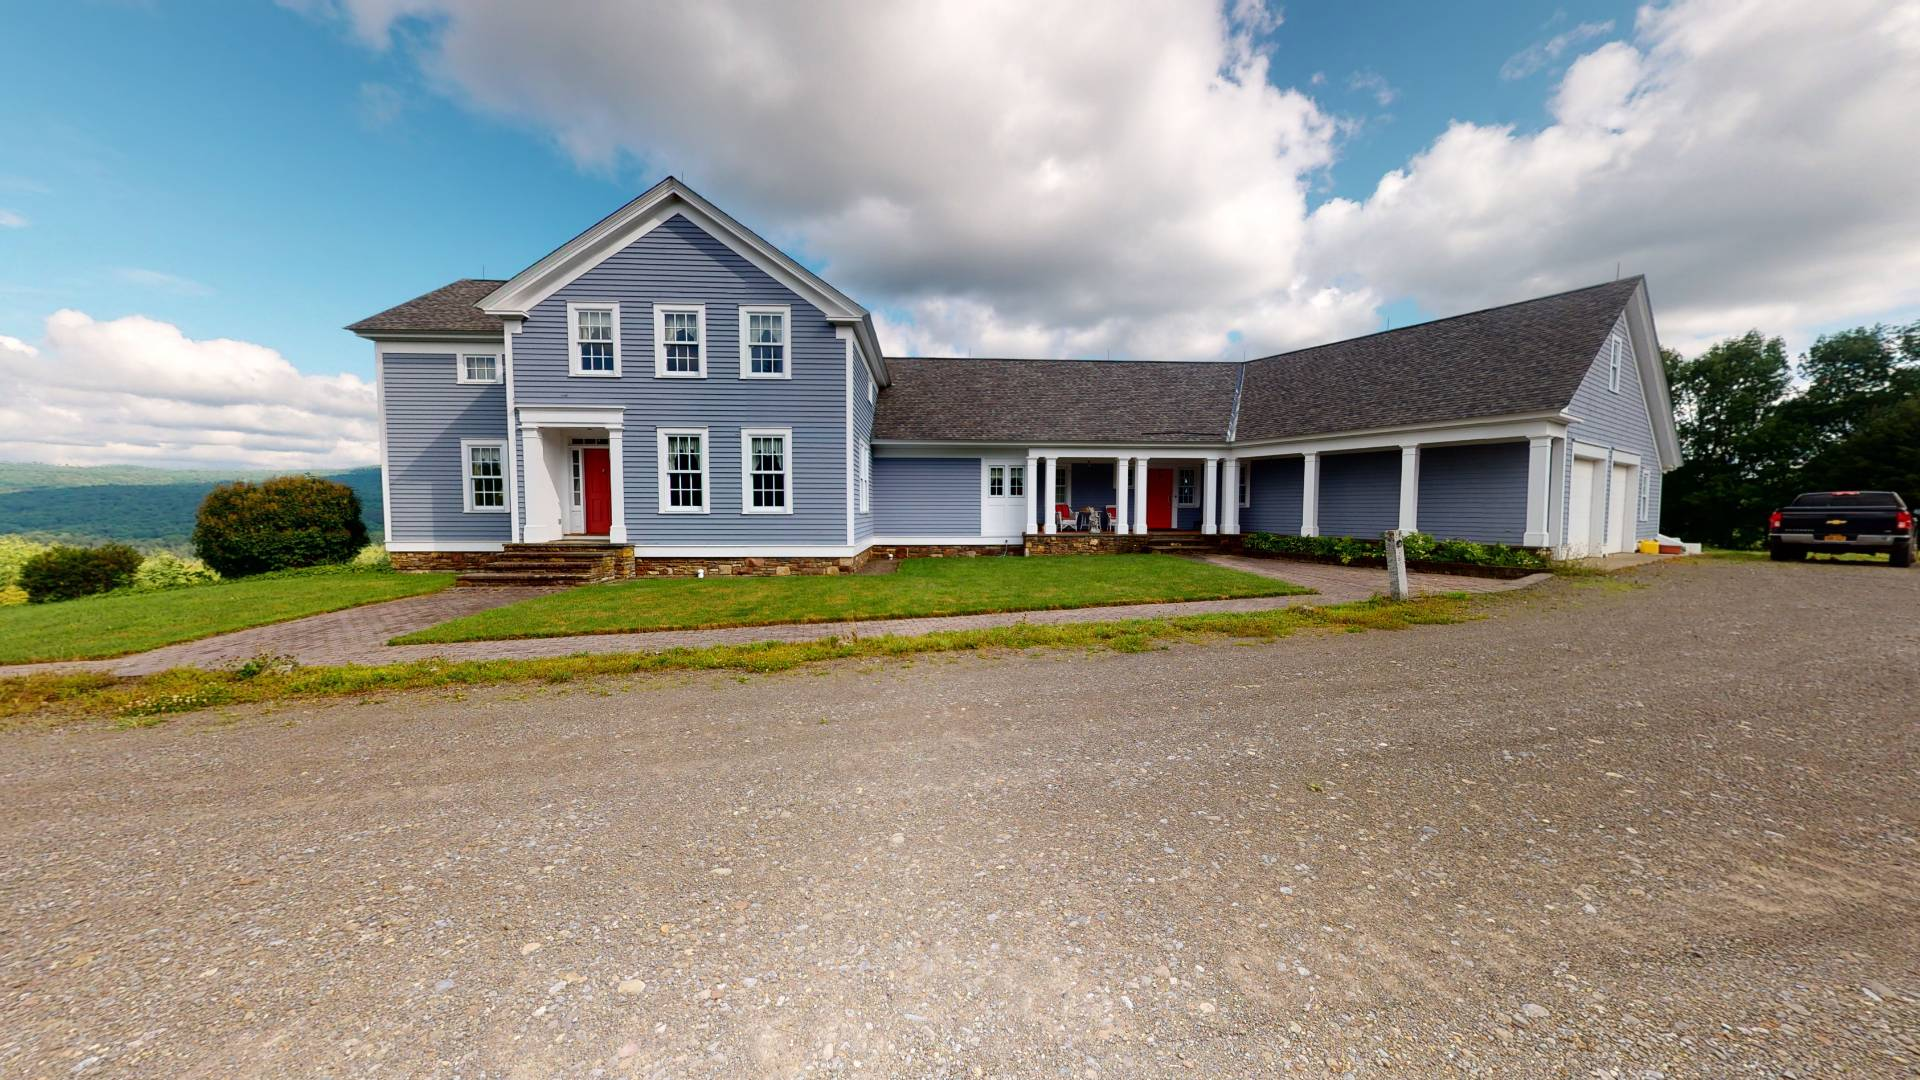 3700 SqFt House In Cooperstown